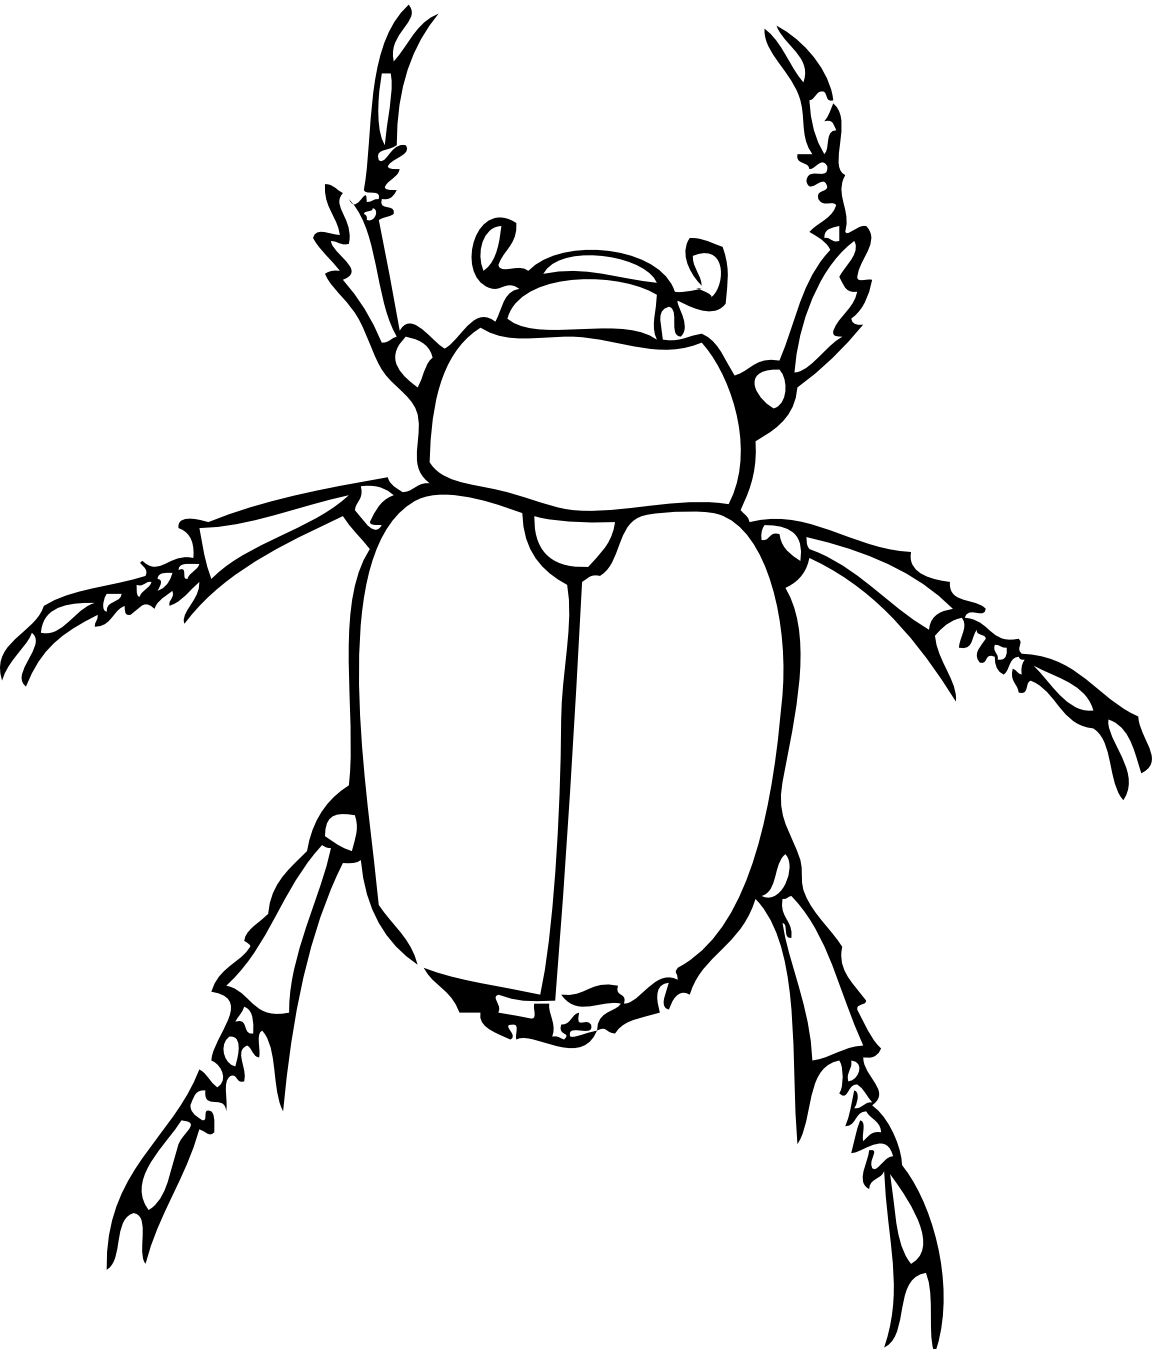 drawing bugs scarab beetle